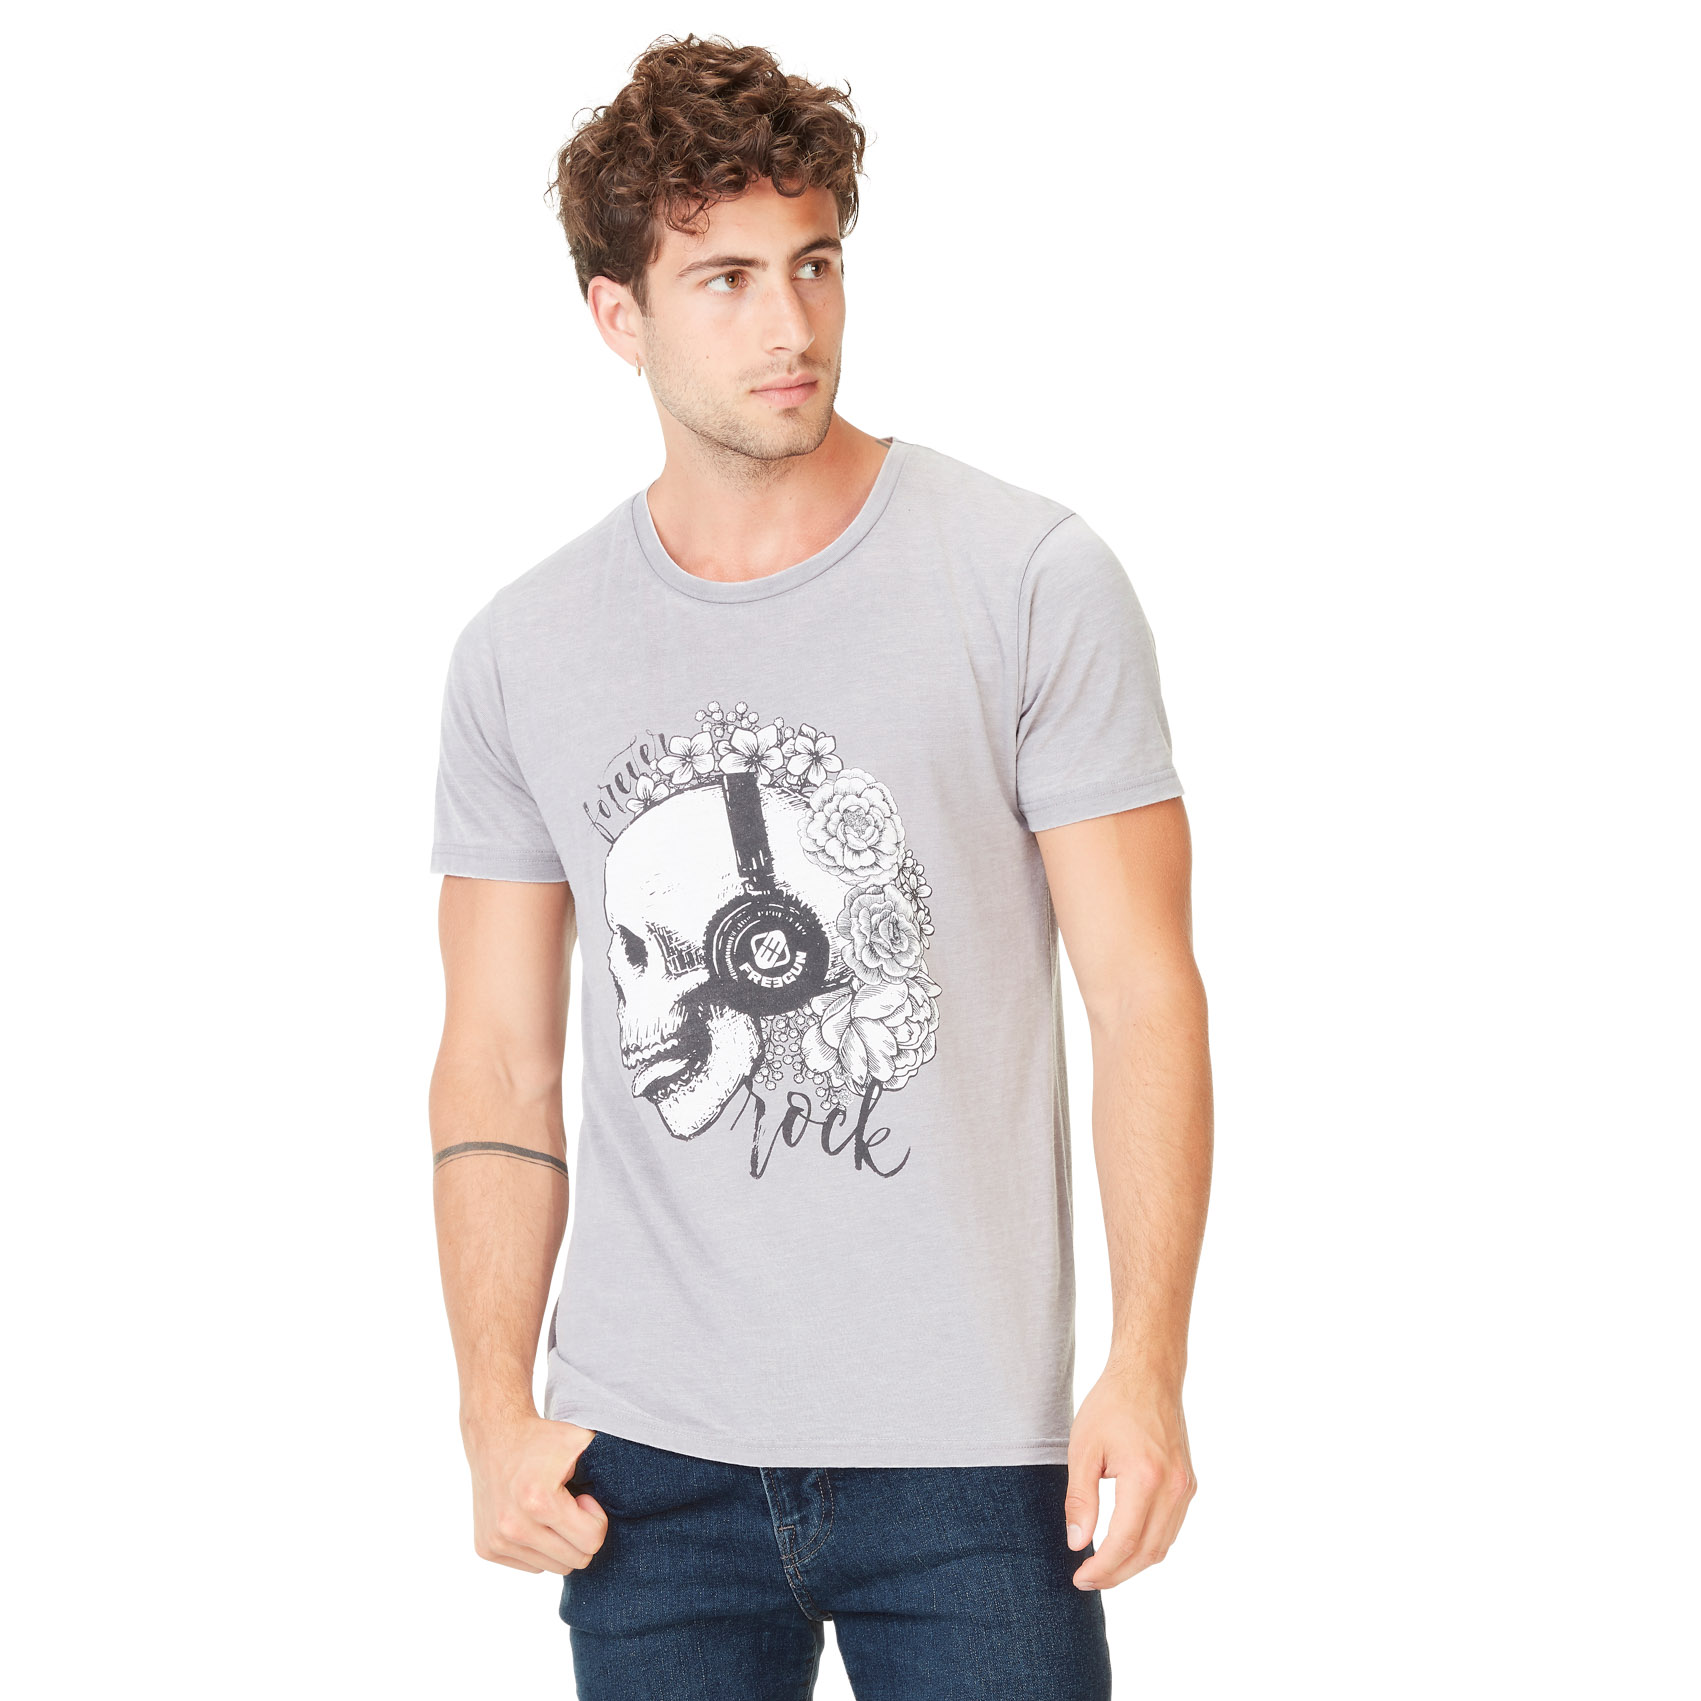 T-shirt homme forever rock (photo)